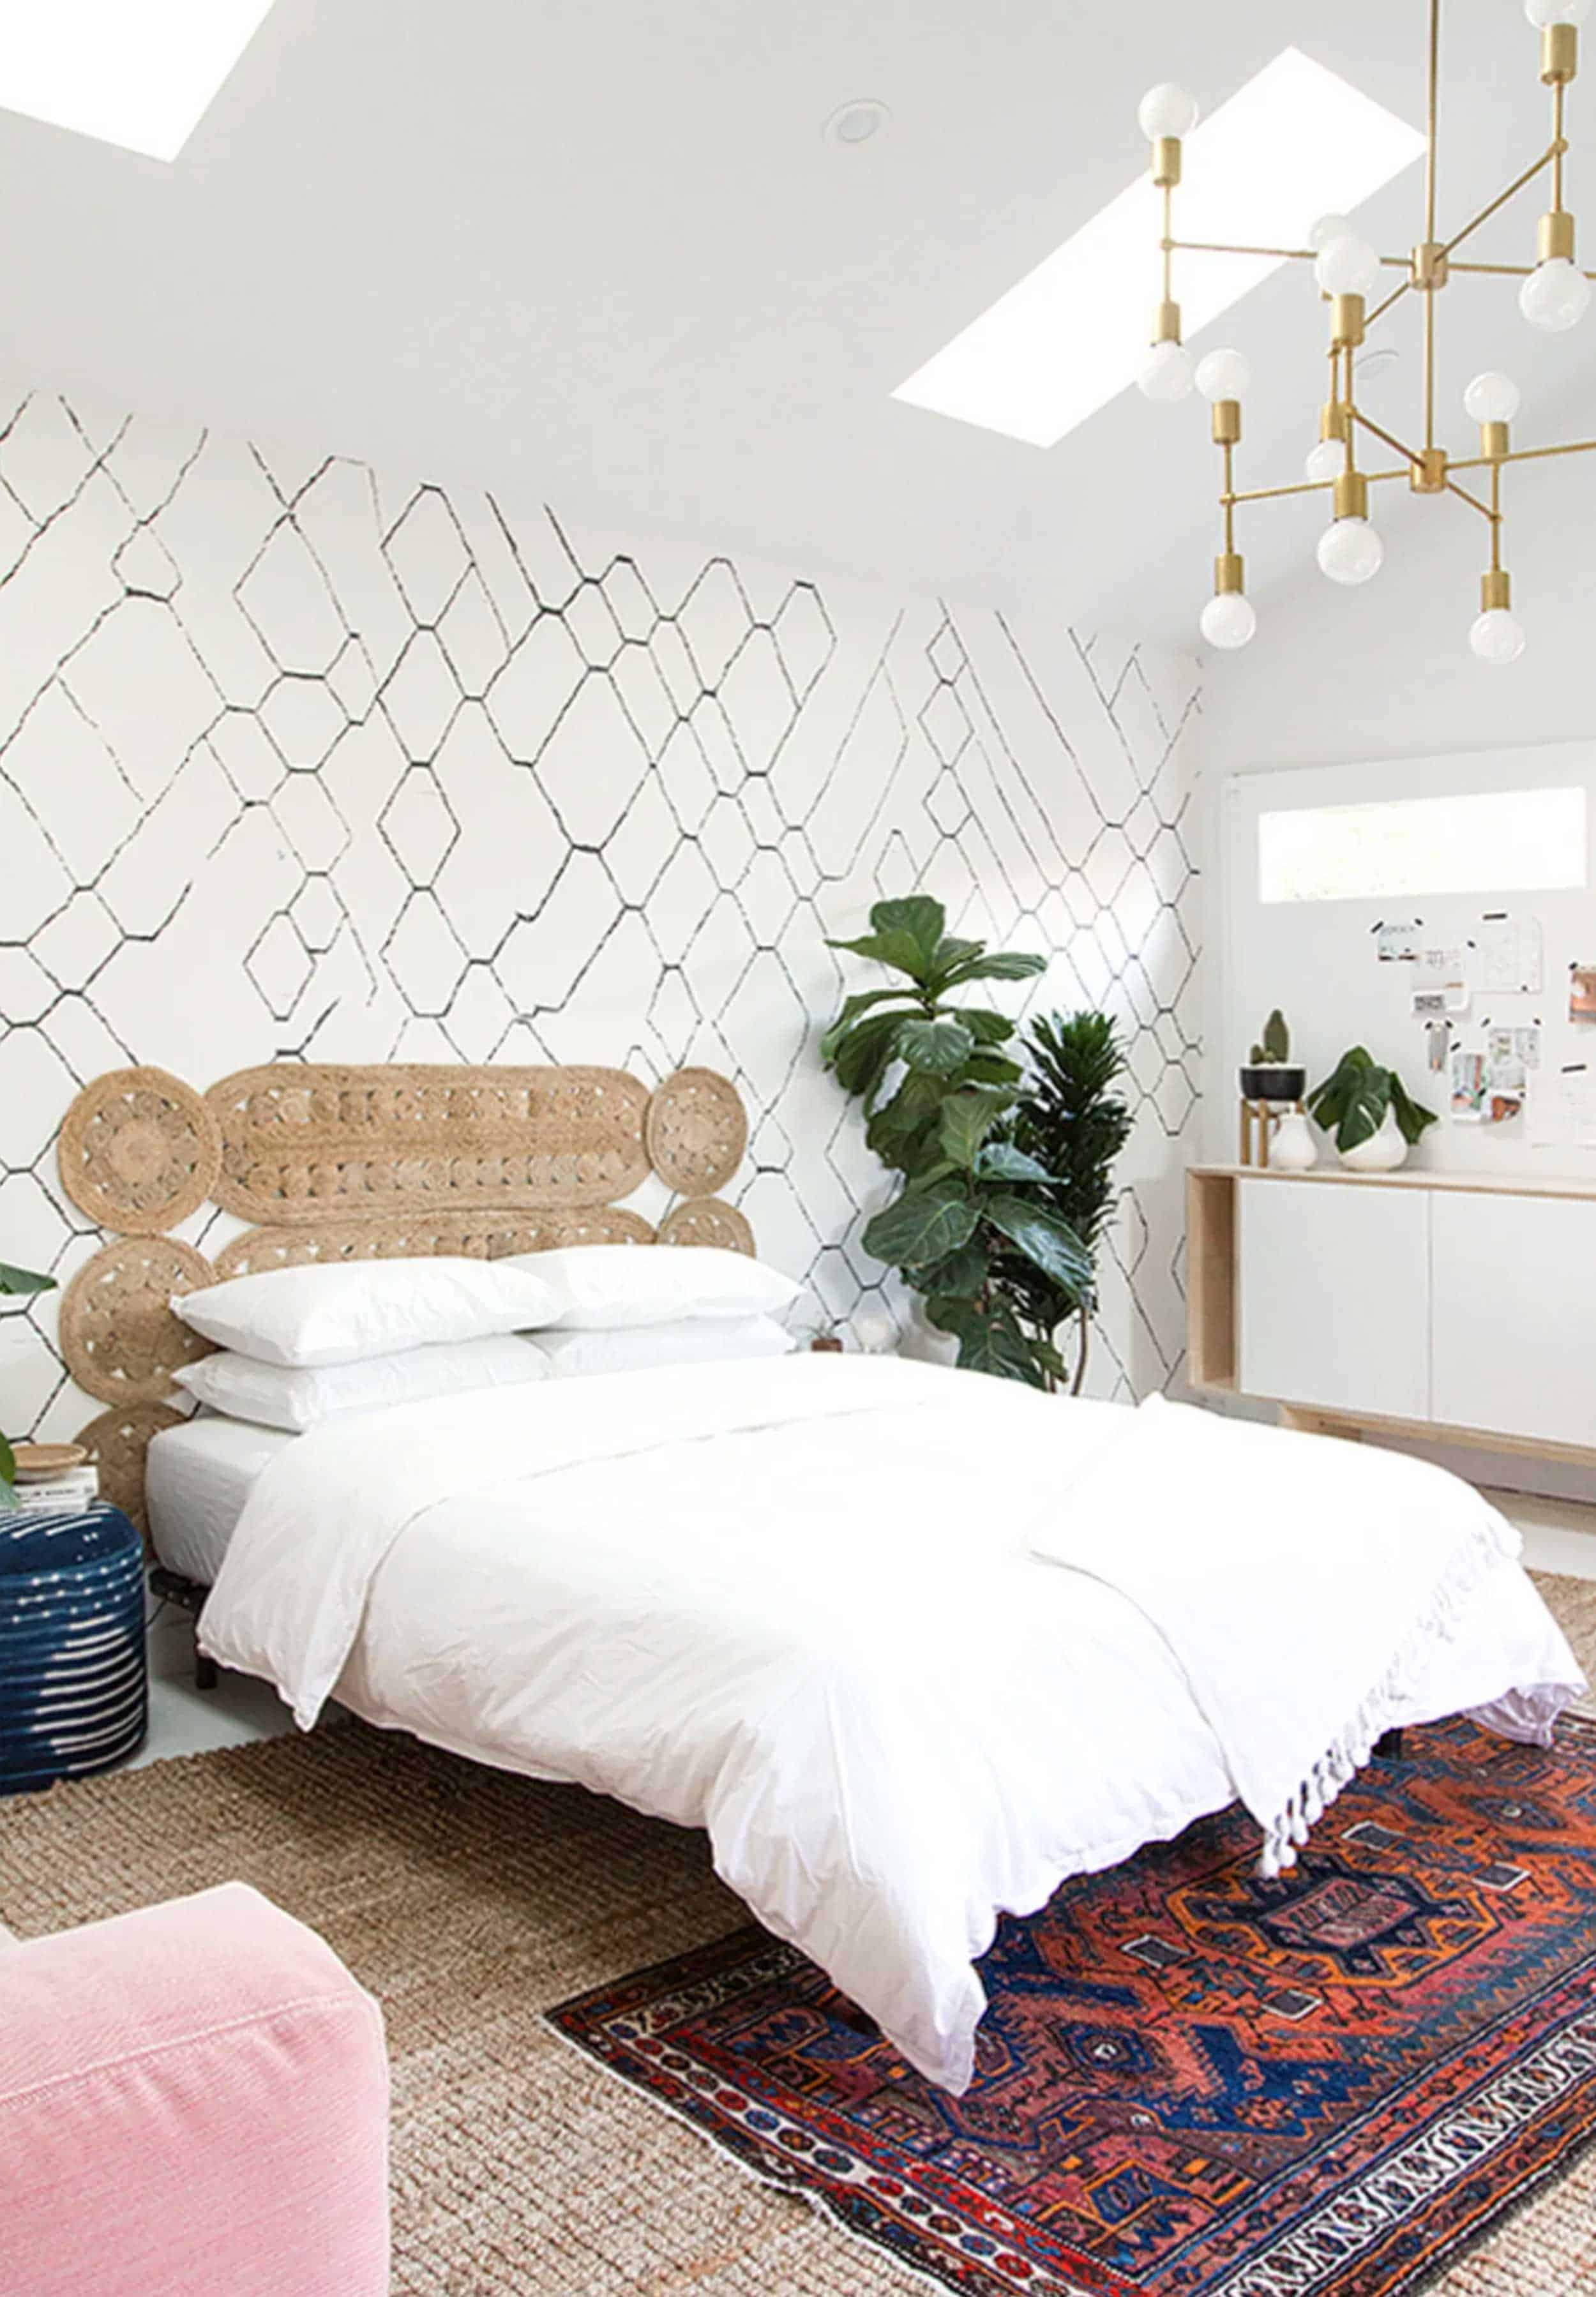 12 Diy Headboards That Everyone Will Think You Actually Bought Emily Henderson